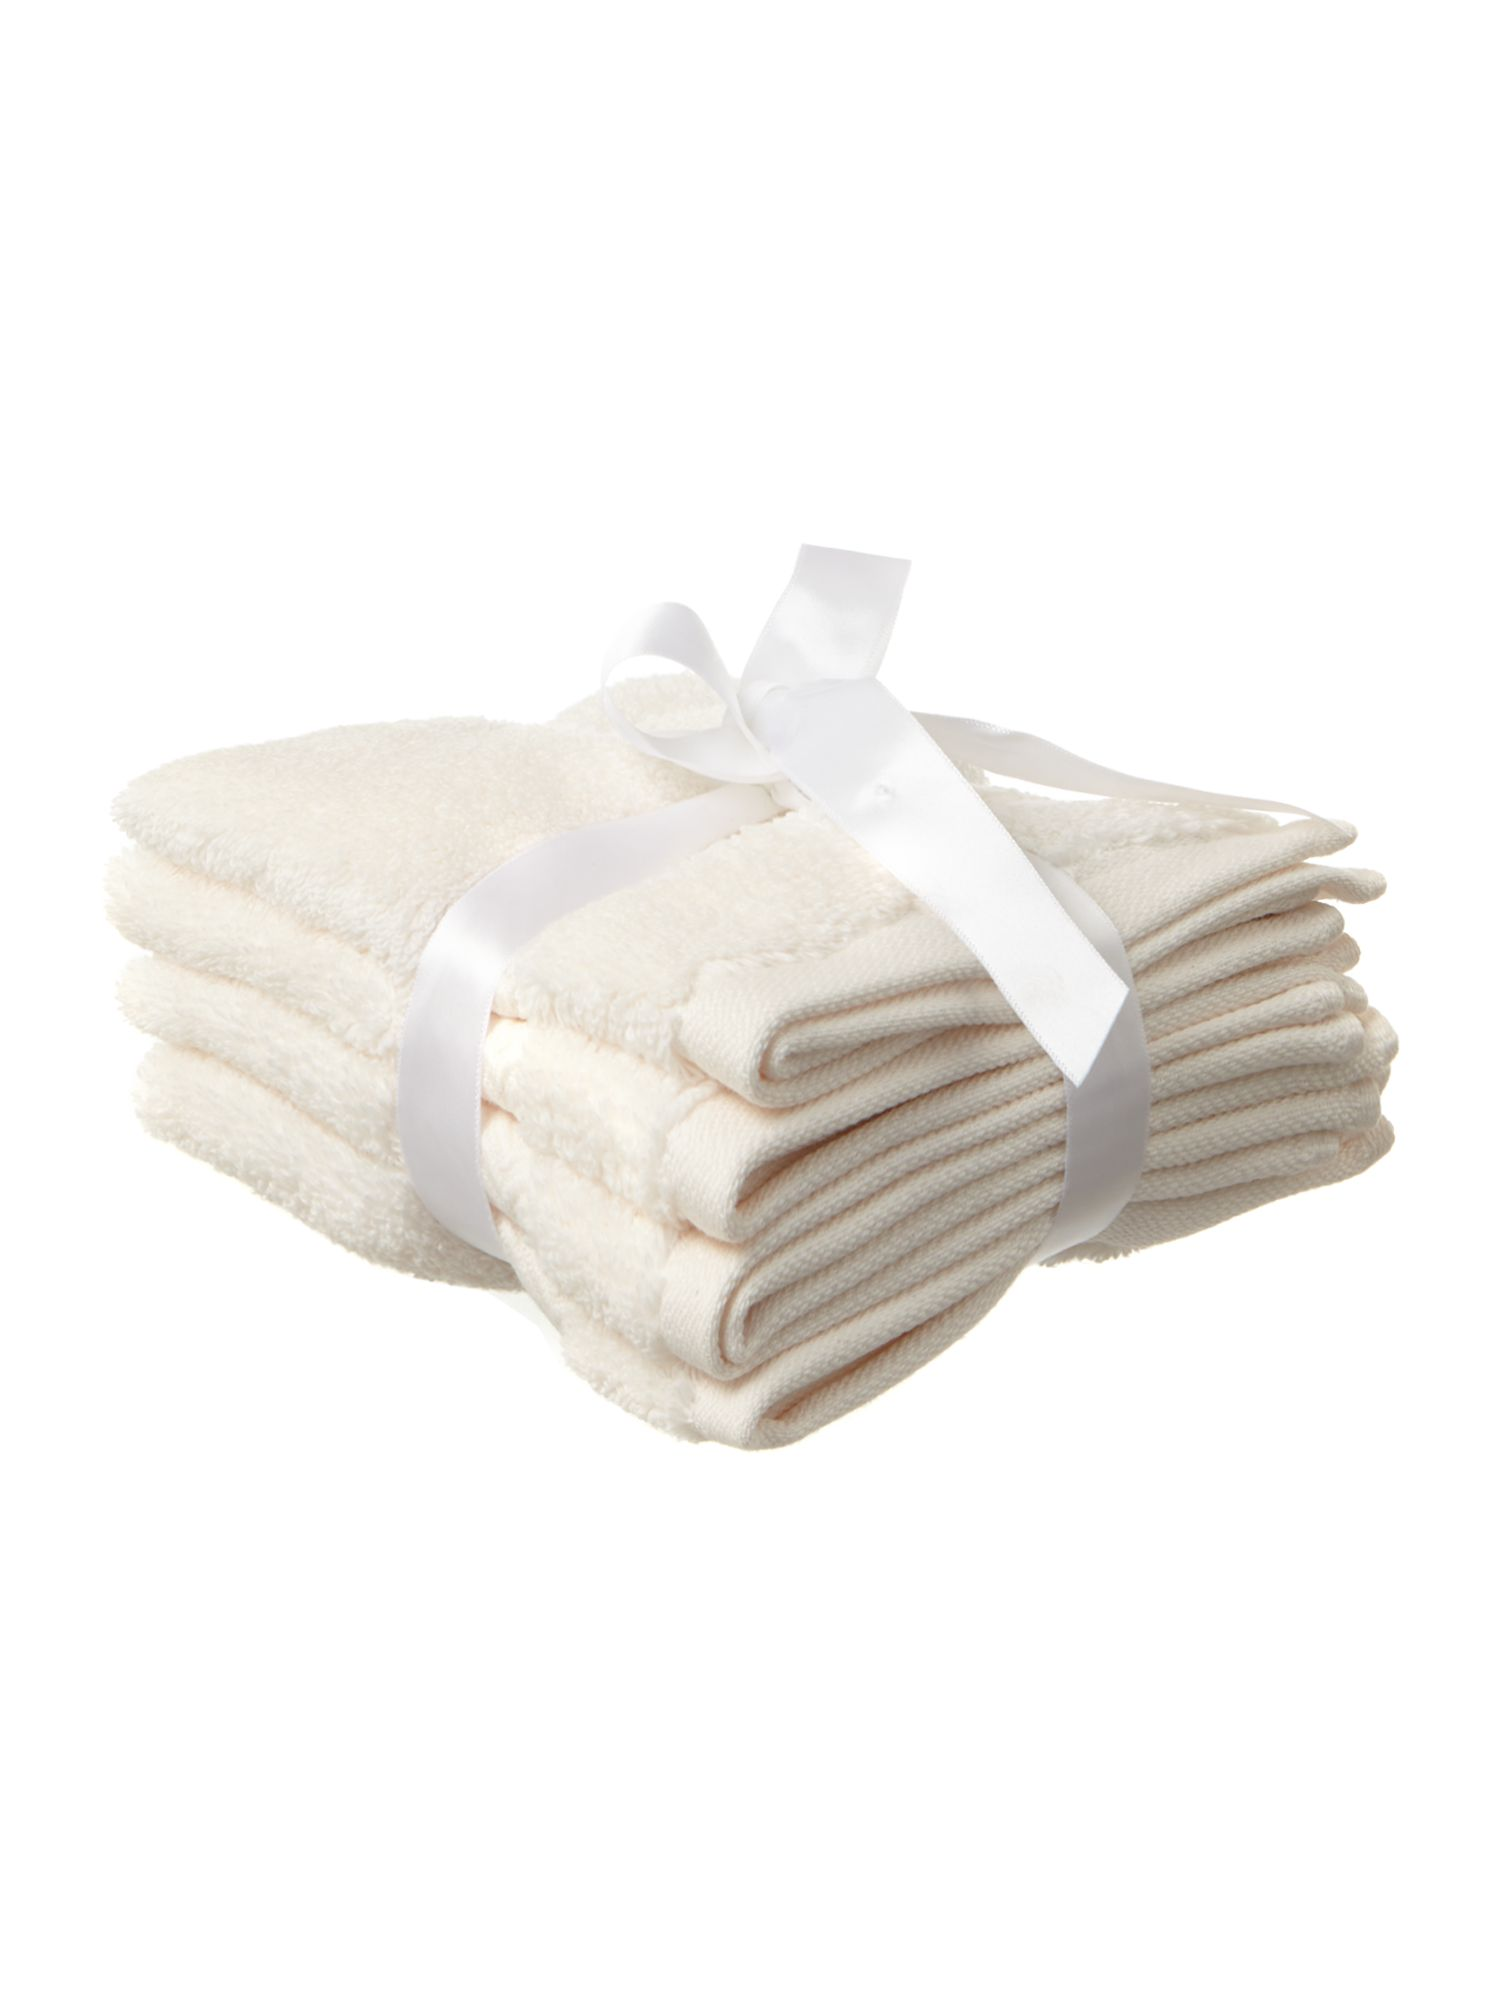 Zero Twist face cloth set of 4 in cream